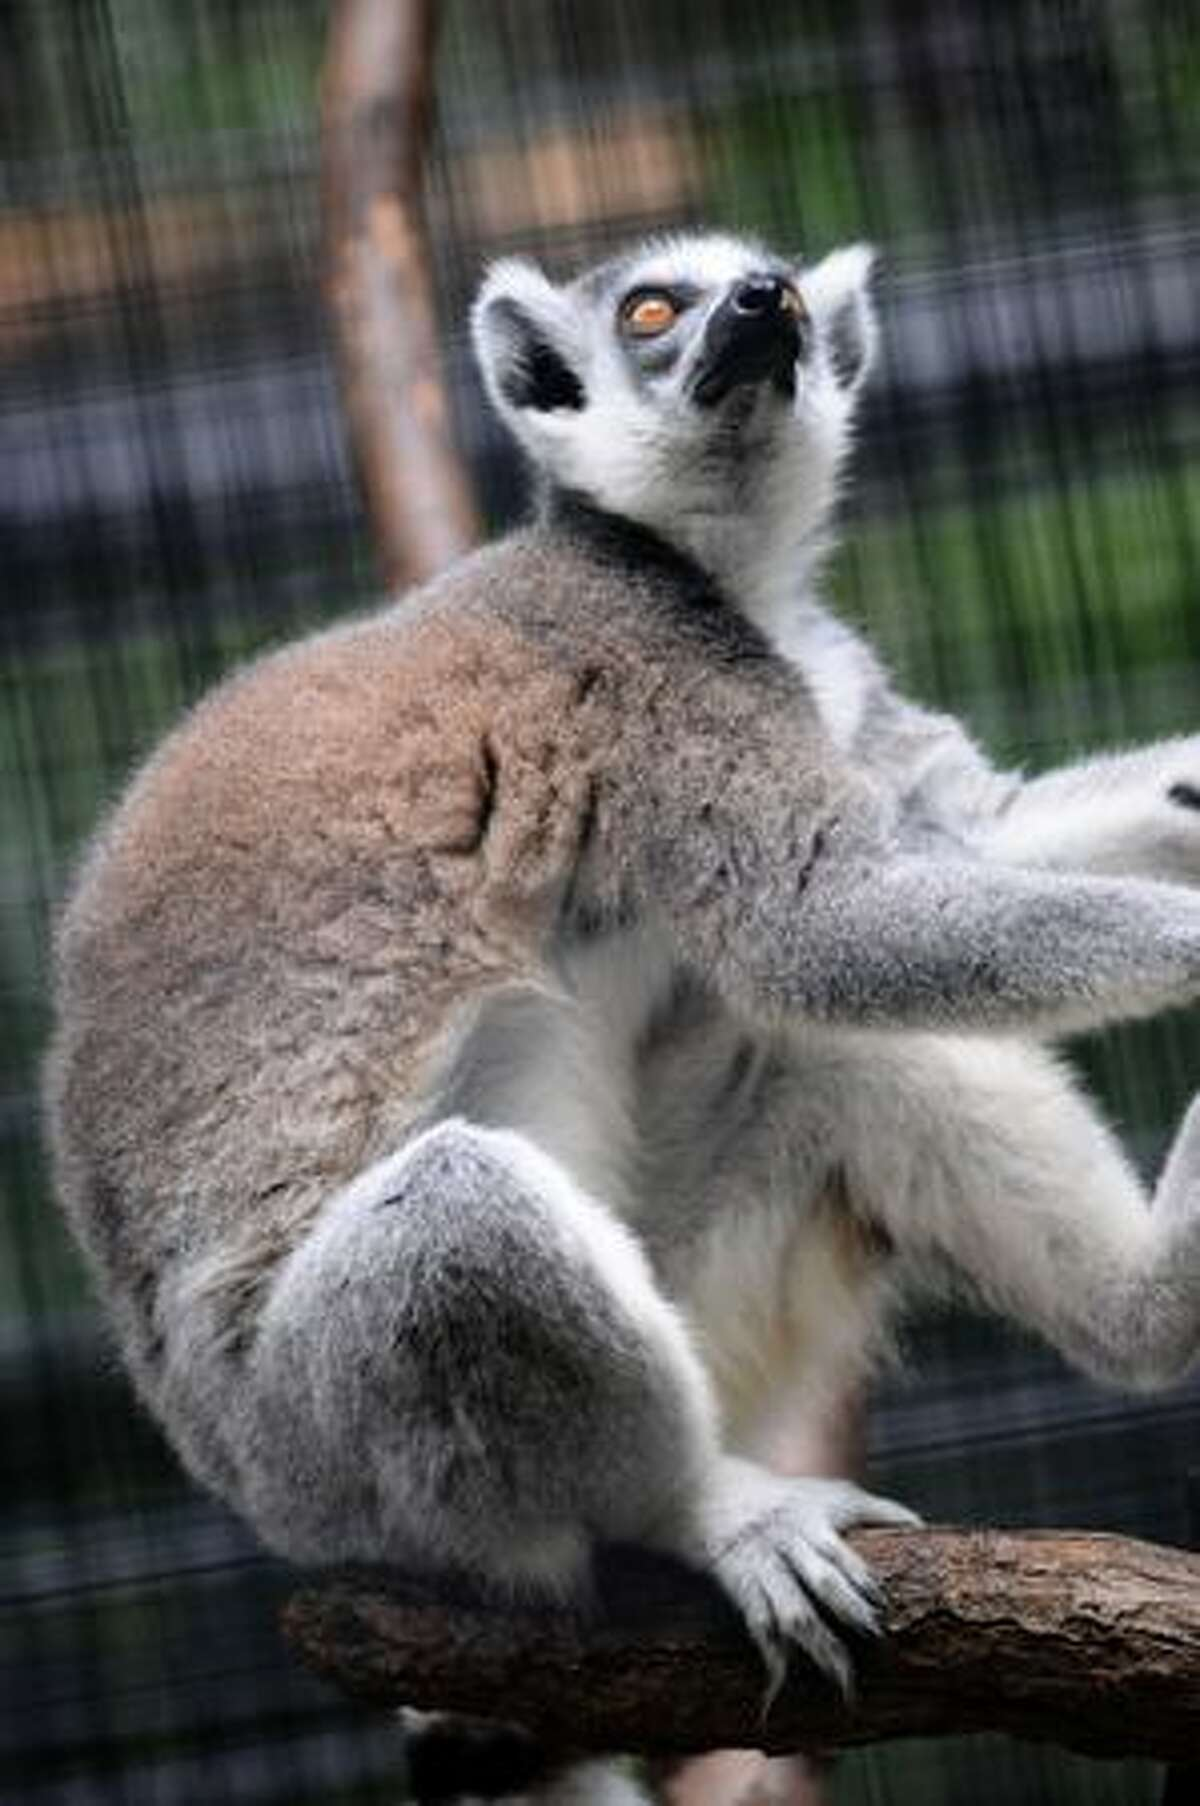 A ring-tailed lemur (Lemur catta) sits on a tree in its enclosure at the zoological gardens in Hong Kong. The ring-tailed lemur is endemic to the island of Madagascar and it can typically live 16 to 19 years in the wild and 27 years in captivity.